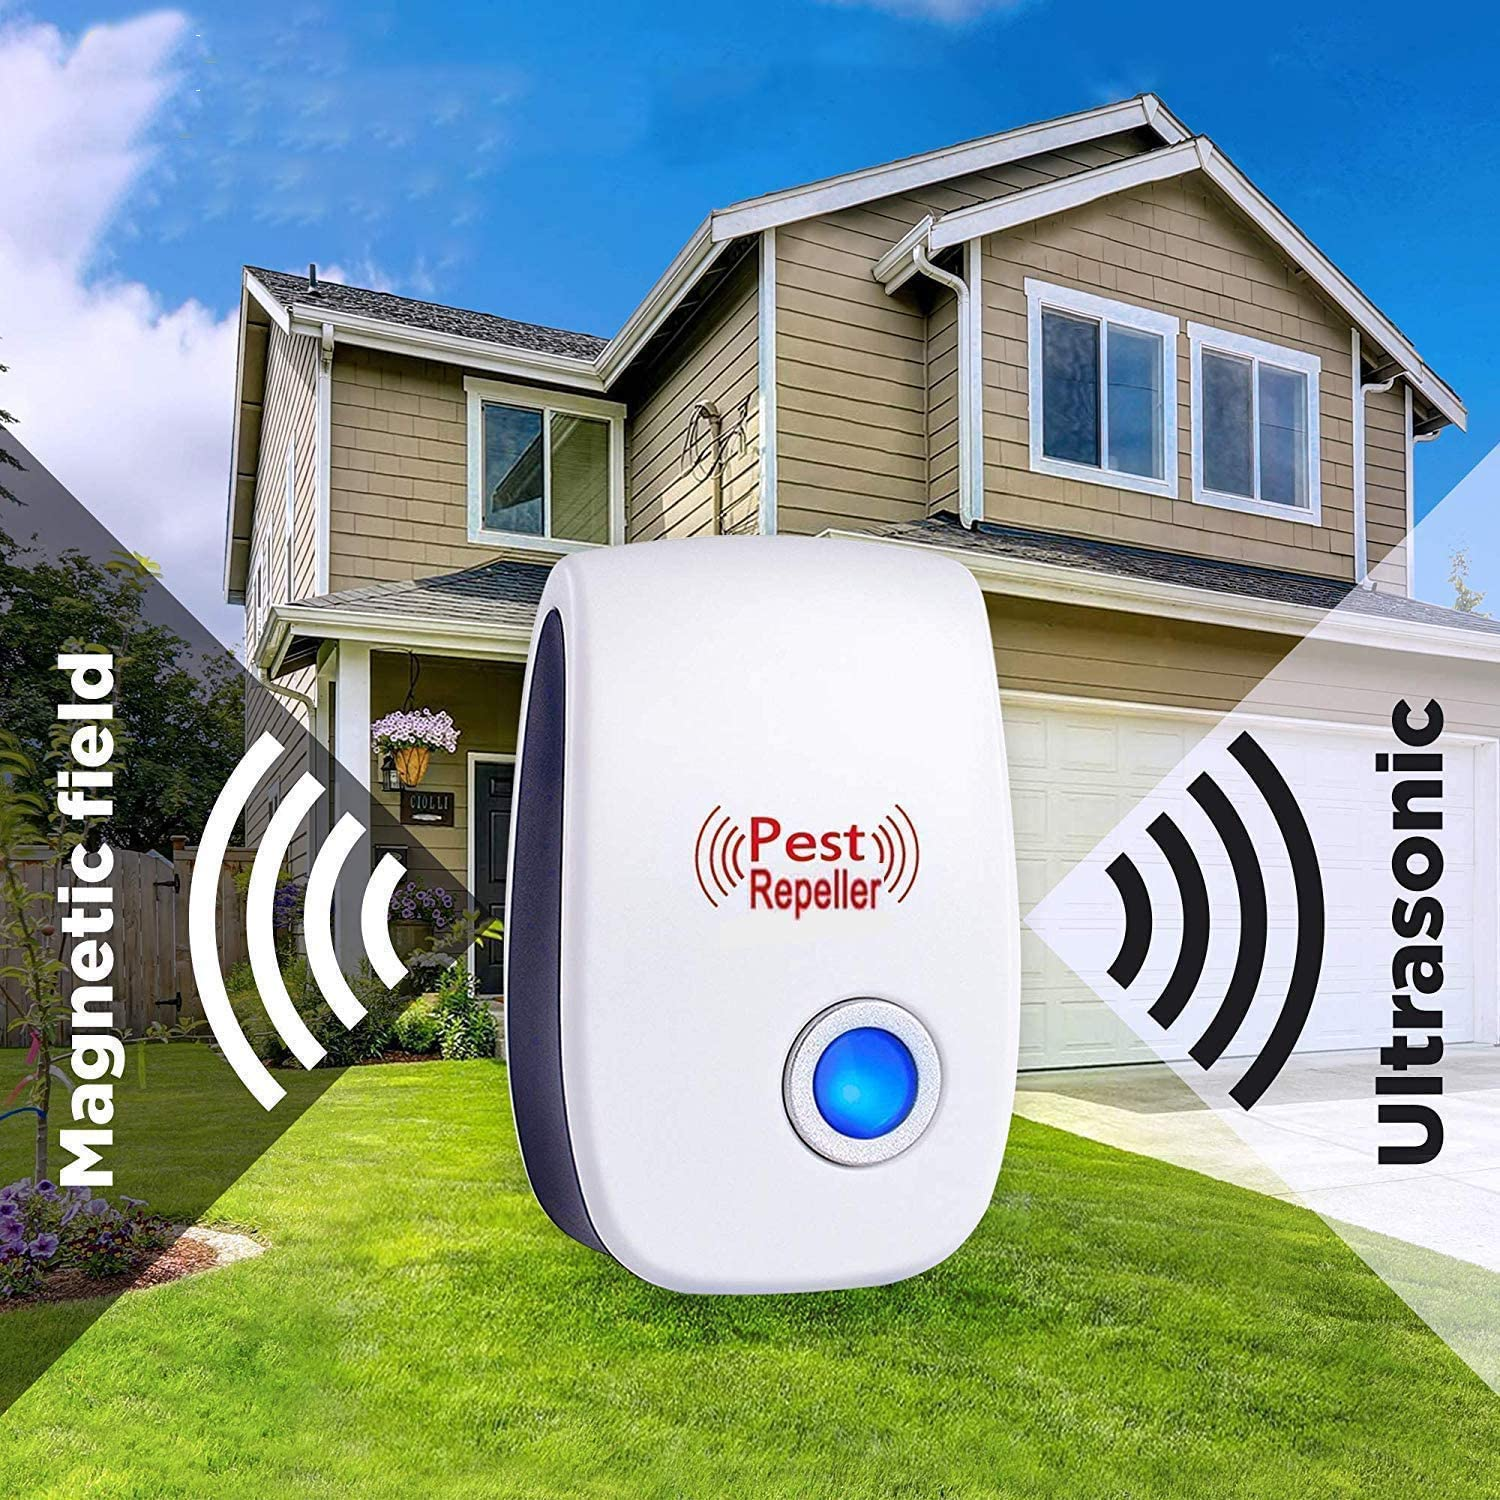 GoldTech Ultrasonic Pest Repeller 6 Pack 2020 Upgraded 100% Safe Electronic Pest Control Ultrasonic Repellent Indoor Plug-in Repellent for Bed Mosquitos, Mice, Cockroach, Spider, Ant, Bug and Insect: Health & Personal Care